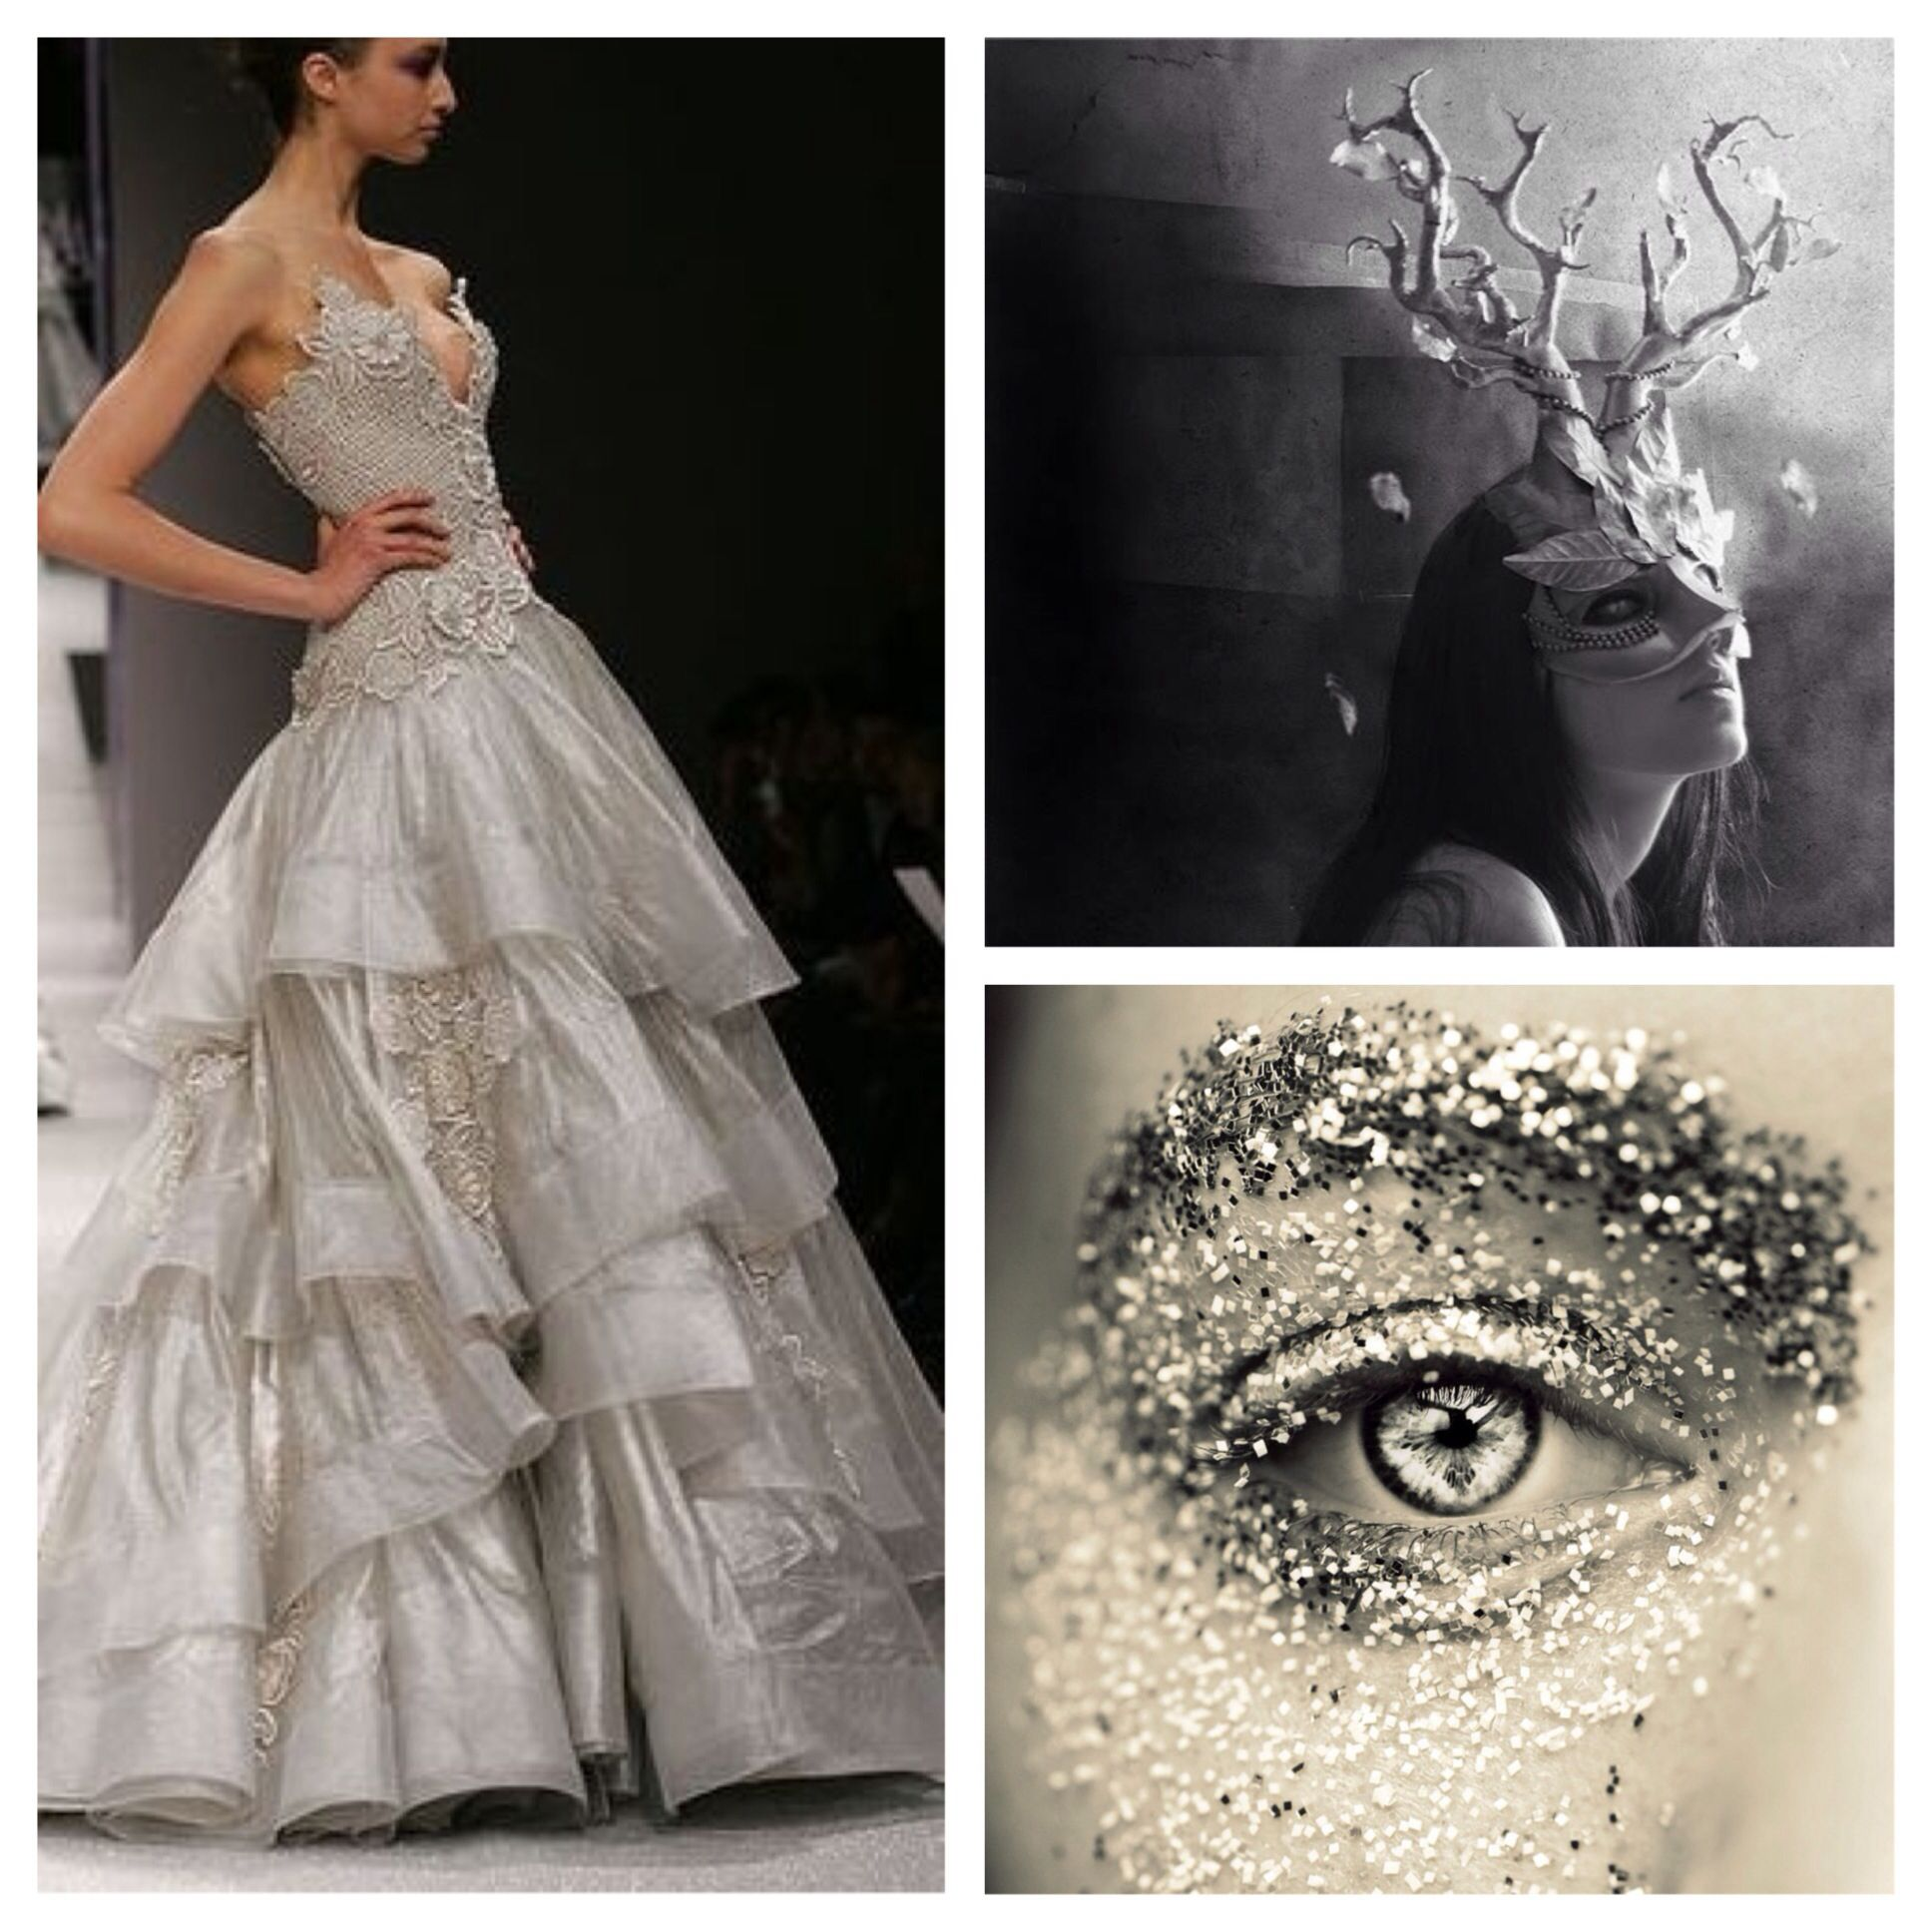 Whimsical silver masquerade ball outfit letus go to a masked ball